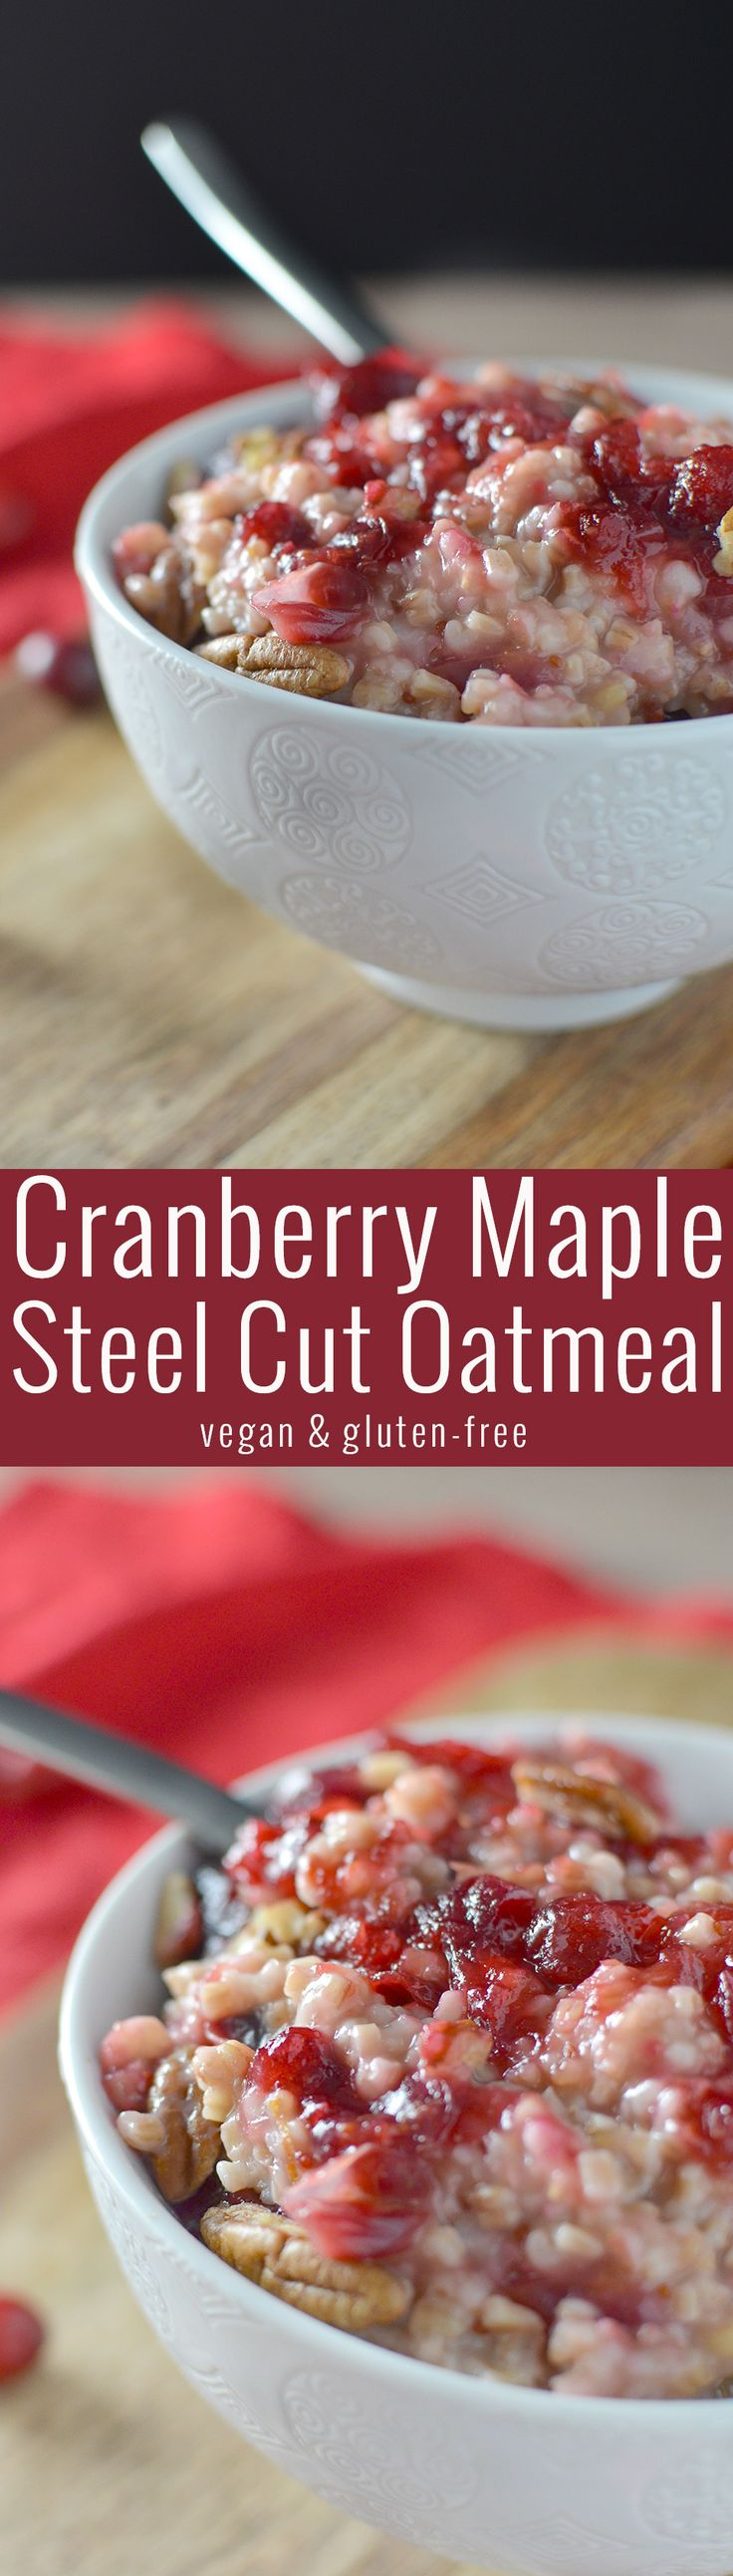 Cranberry Maple Steel Cut Oatmeal! This healthy, vegan and glutenfree breakfast is packed with holiday flavors! Fresh cranberry maple sauce, orange zest and pecans. A must-make!   www.delishknowledge.com